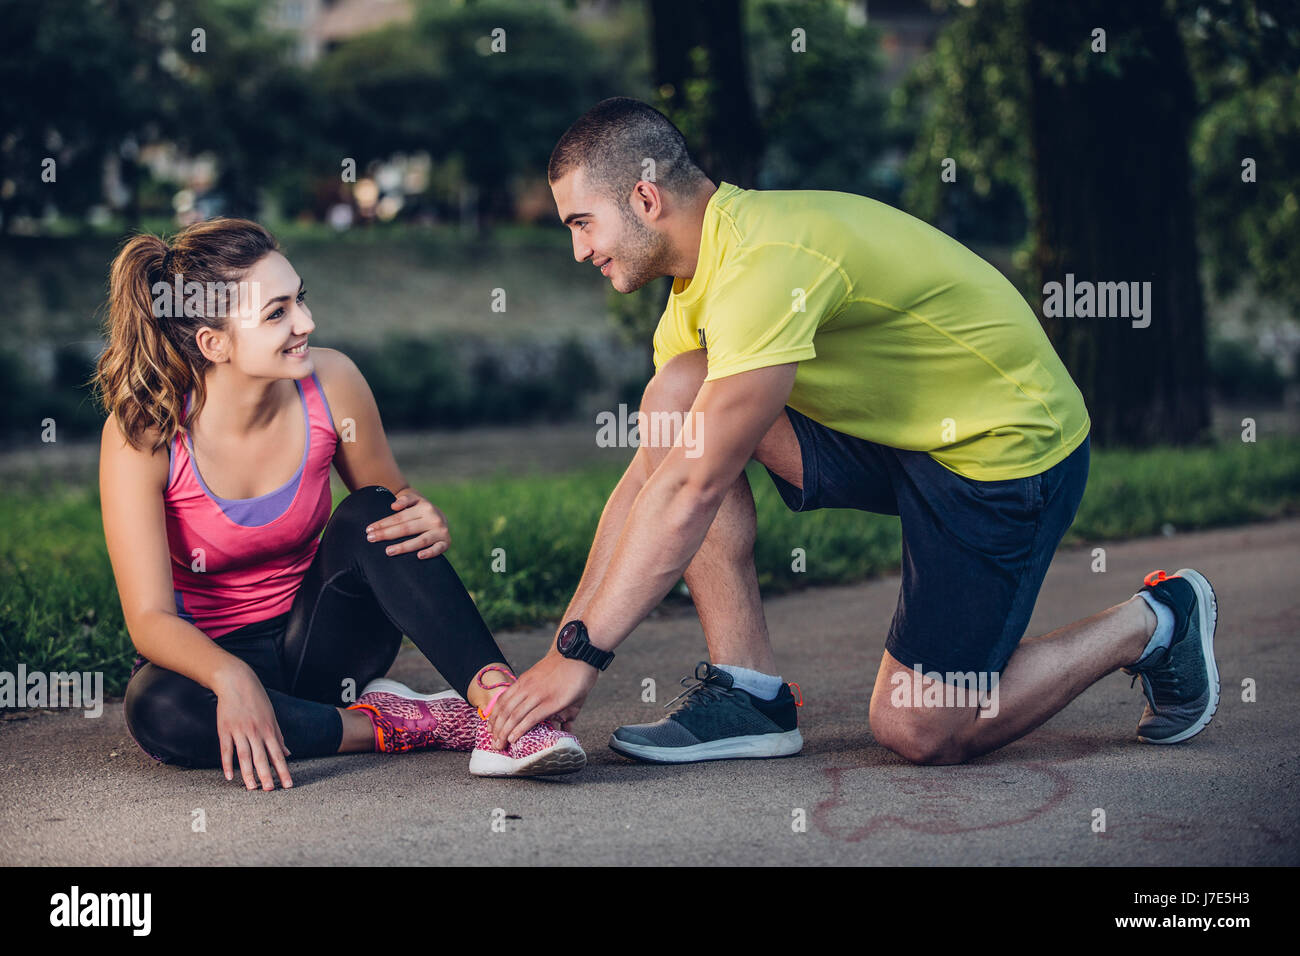 Man helps to woman with injured knee at sport activity - Stock Image